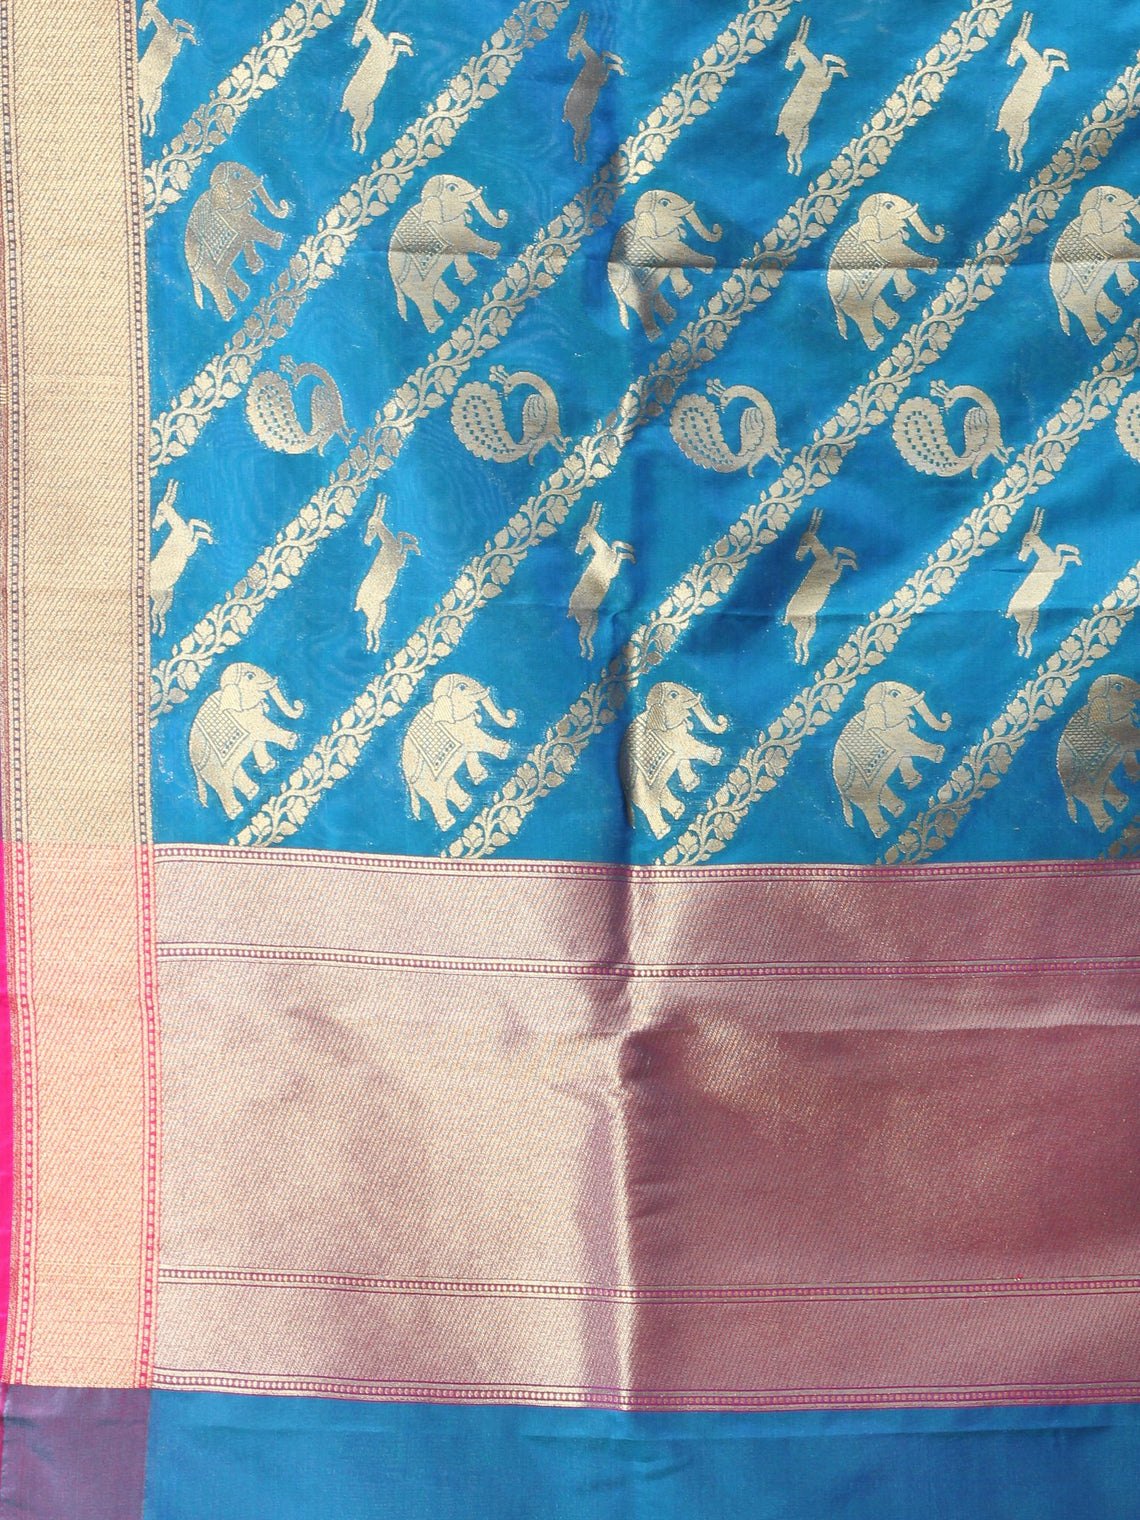 Banarasi Kanni Silk Dupatta With Zari Work - Blue Hot Pink & Gold - D04170875